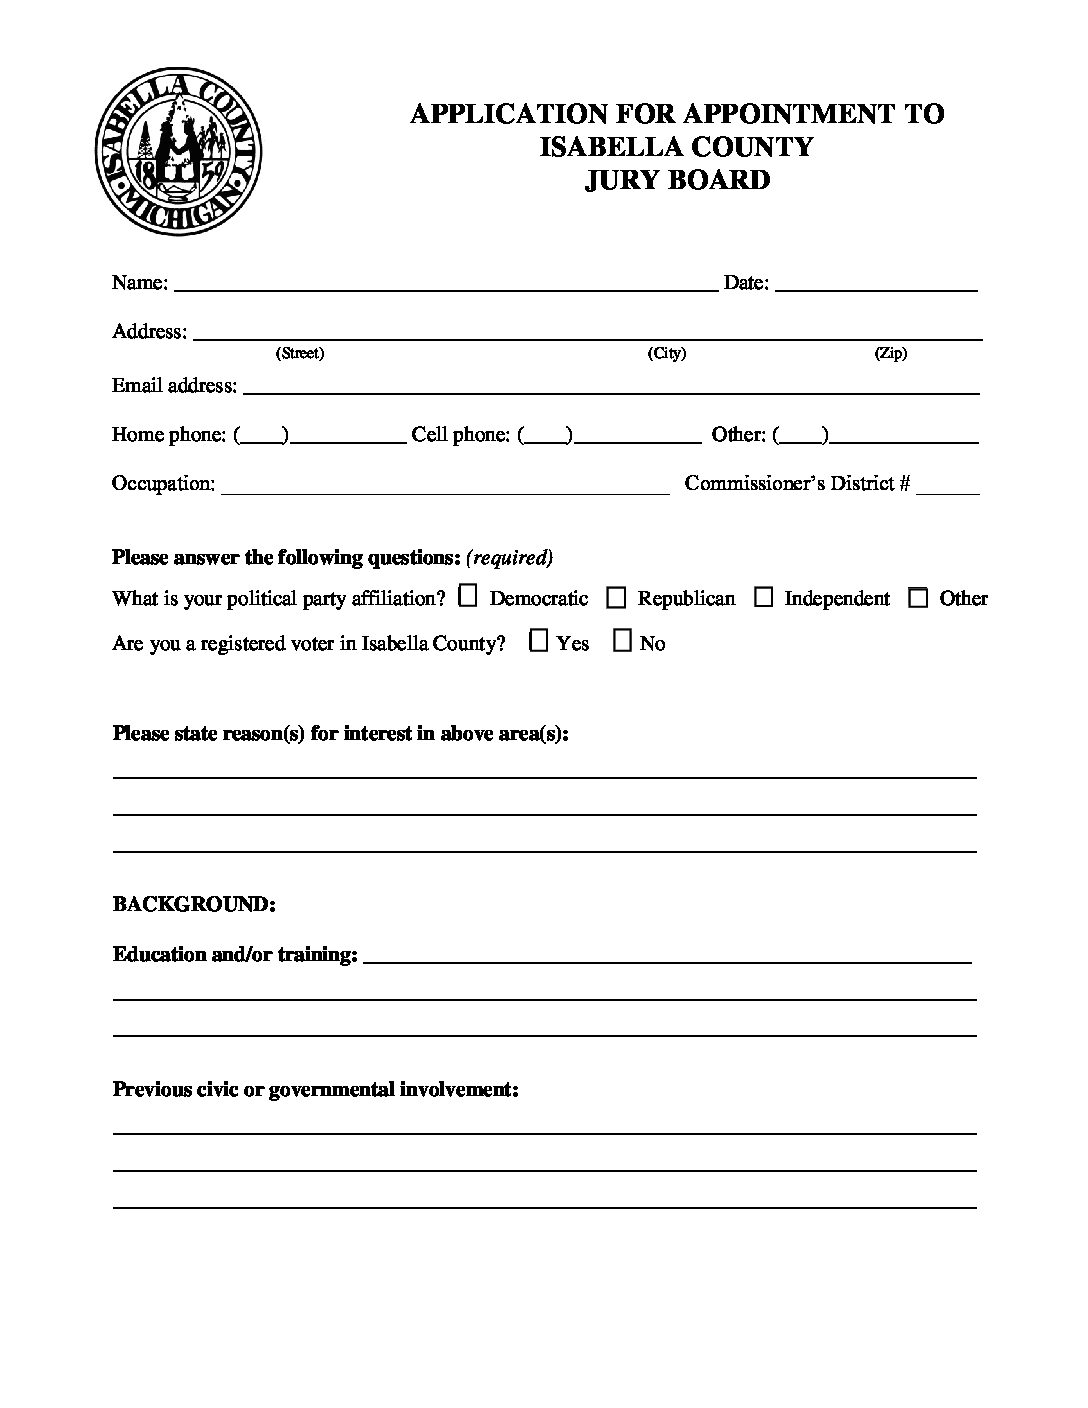 preview image of first page Isabella County Jury Board Application